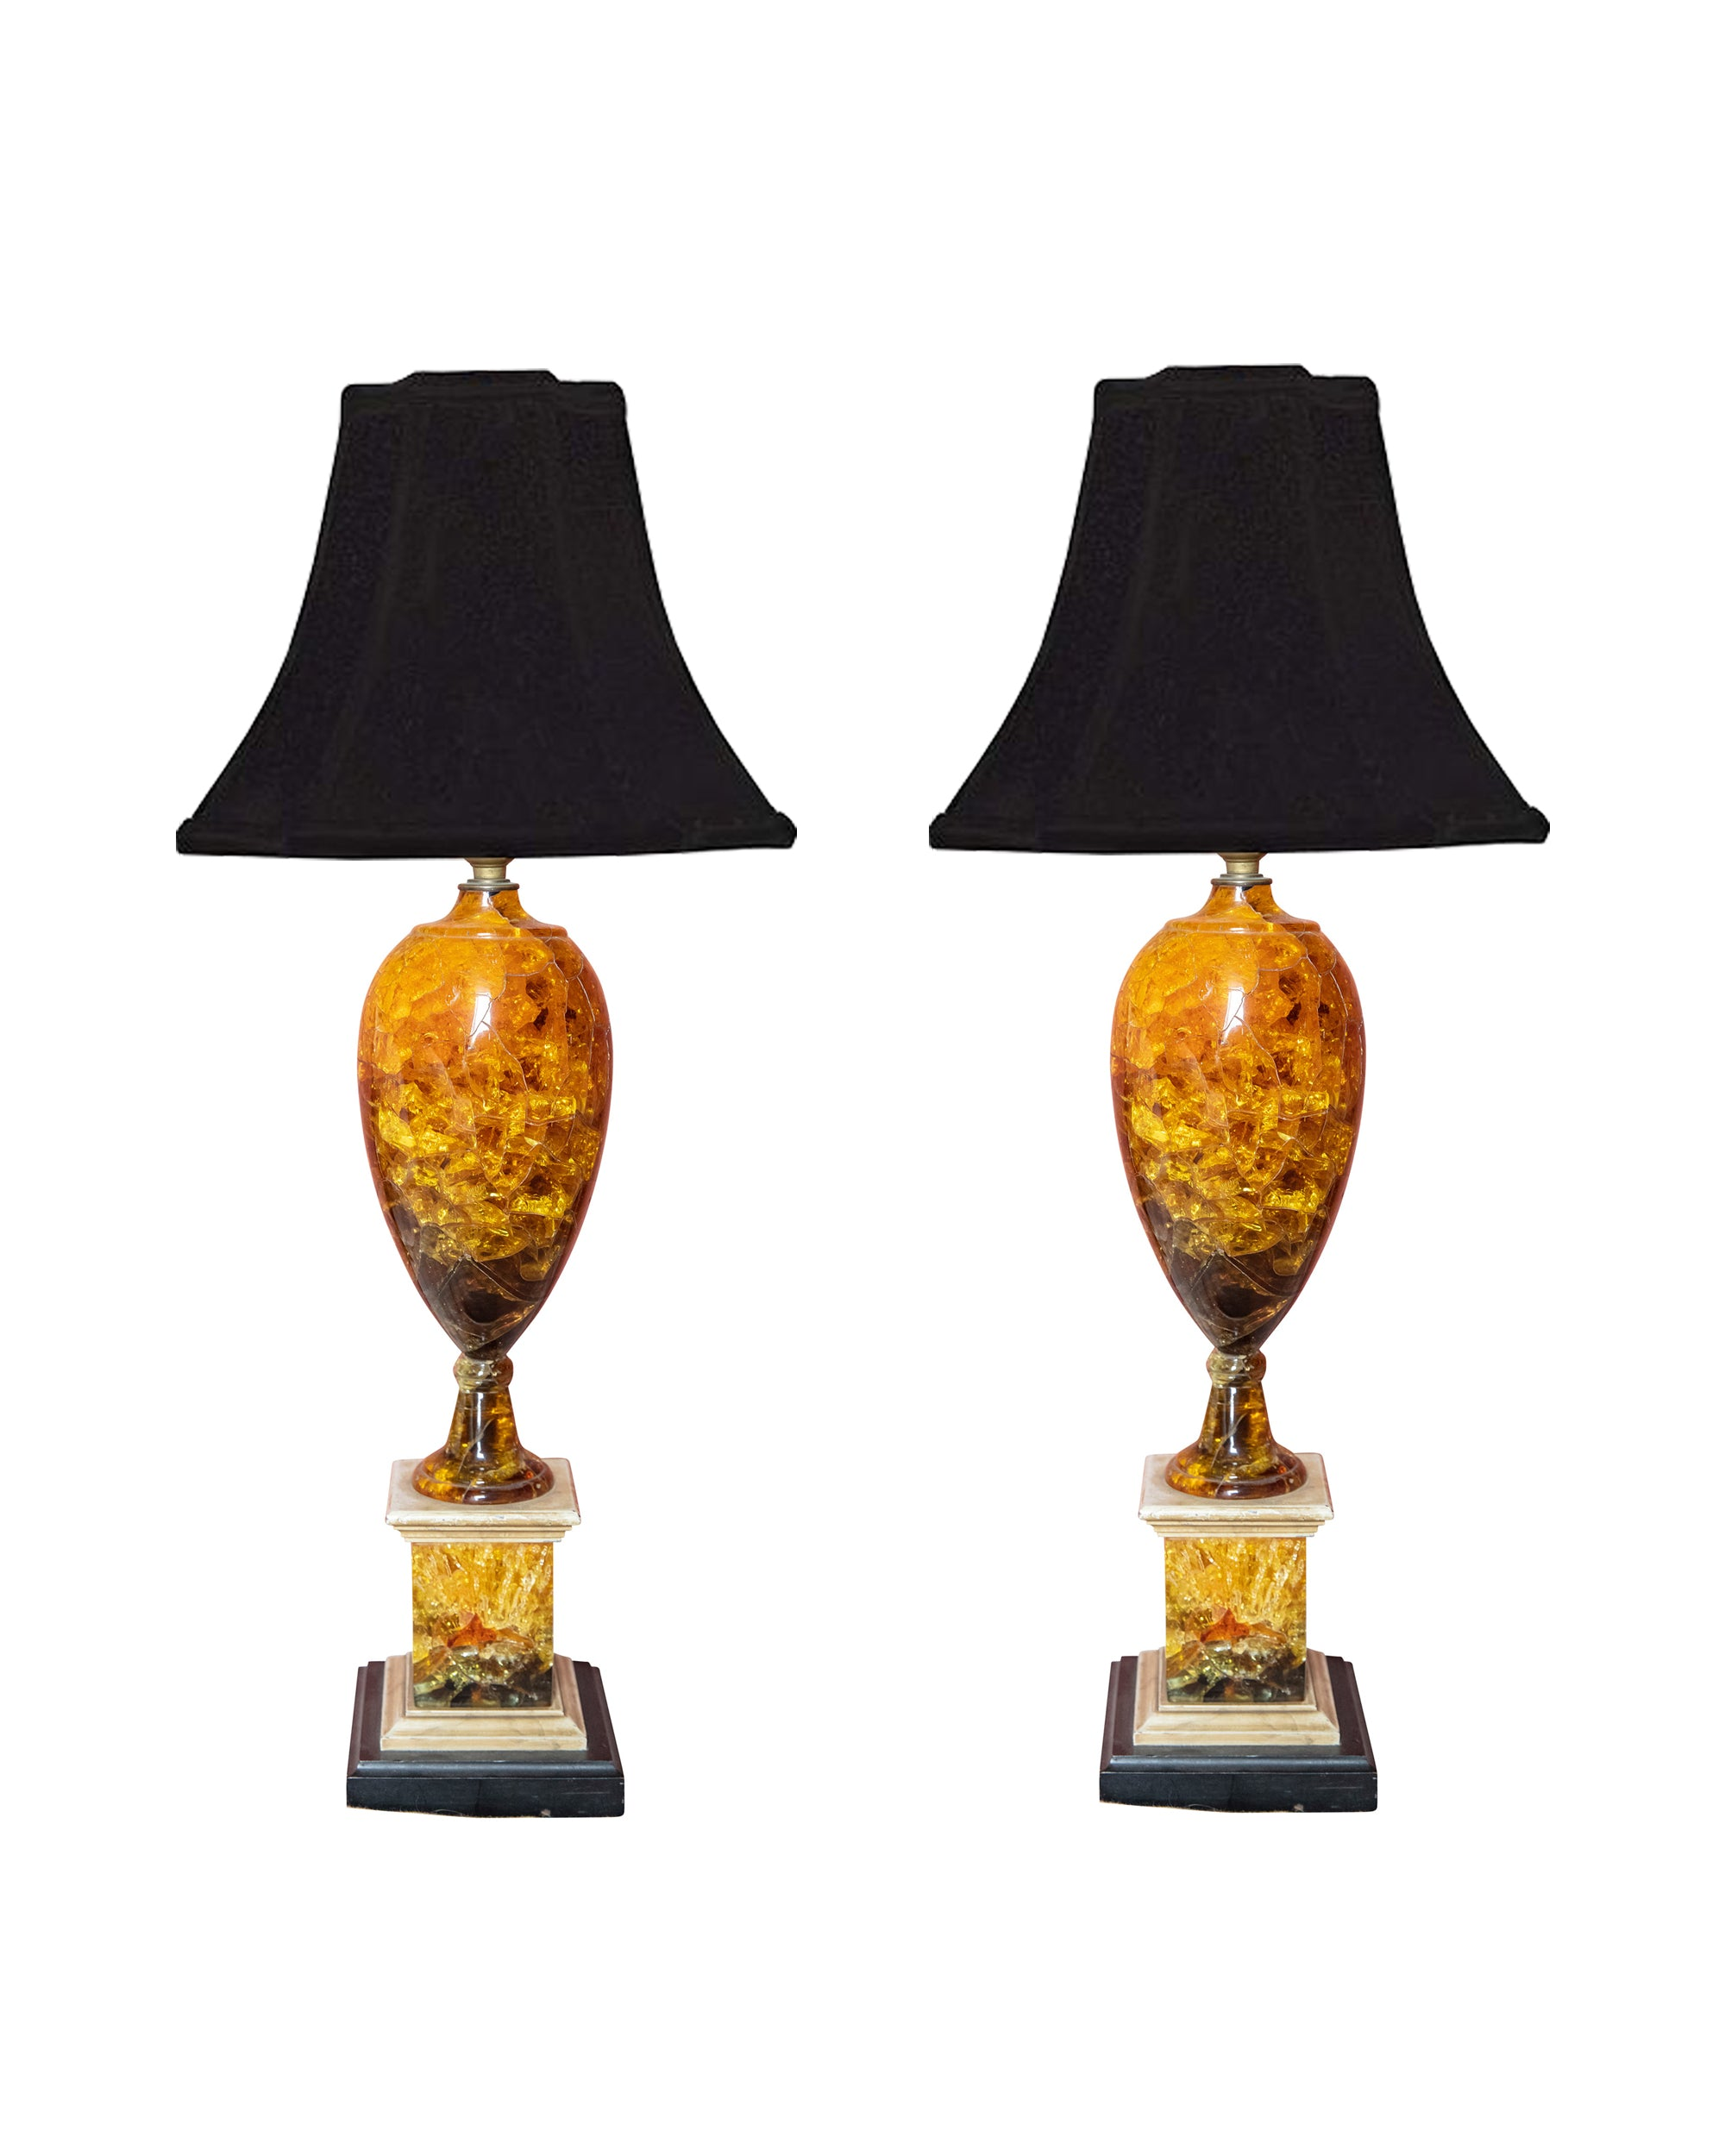 Pair of lamps made with amber-colored fractal resin. France. 1970s